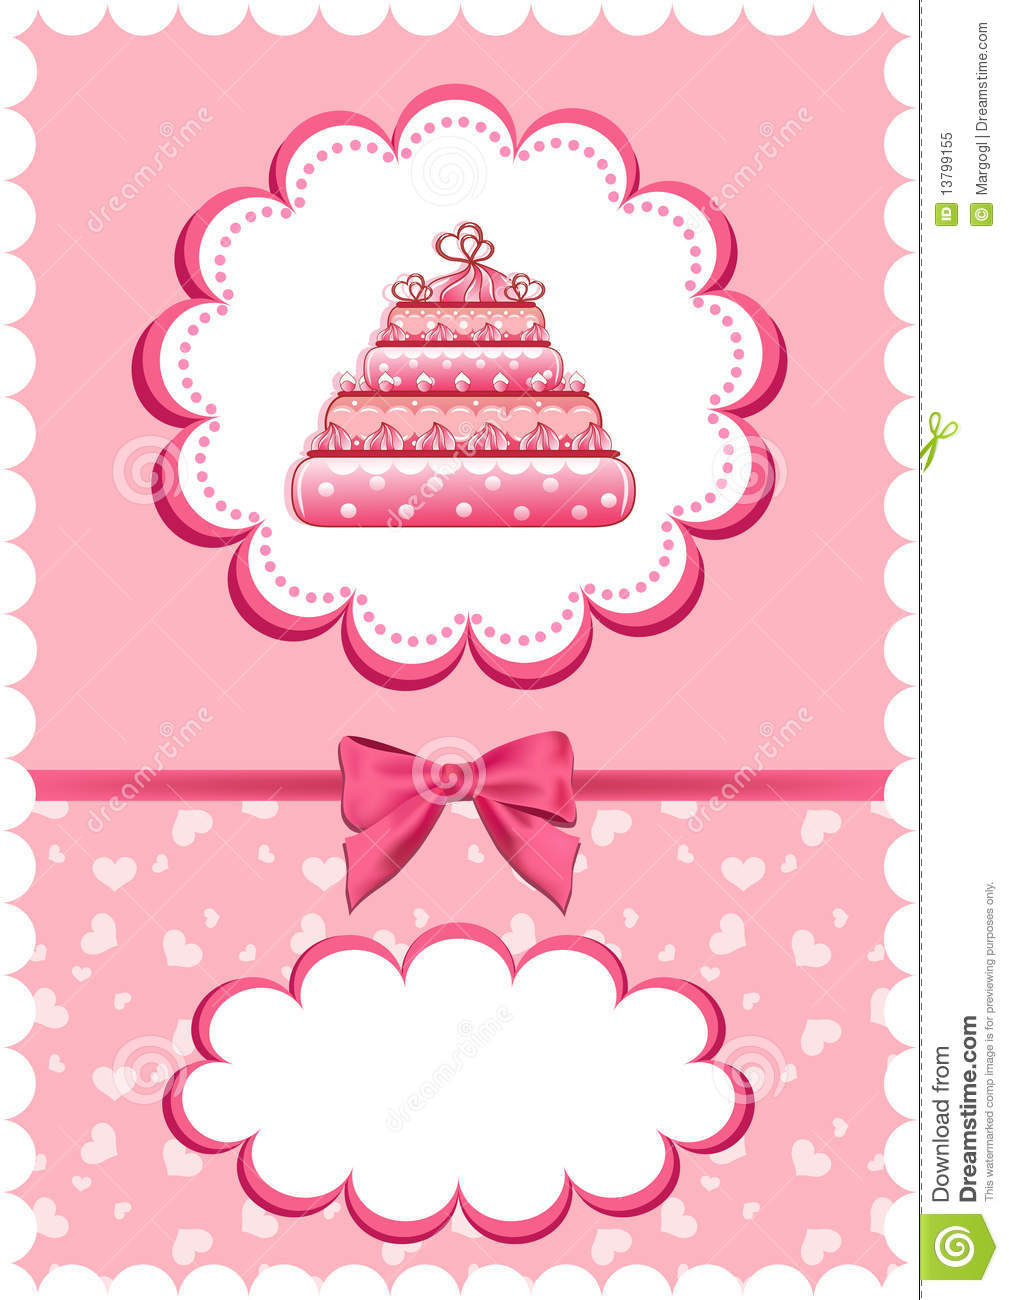 Download Cheerful Babies Card With Cake. Stock Vector - Illustration of happiness, blank: 13799155